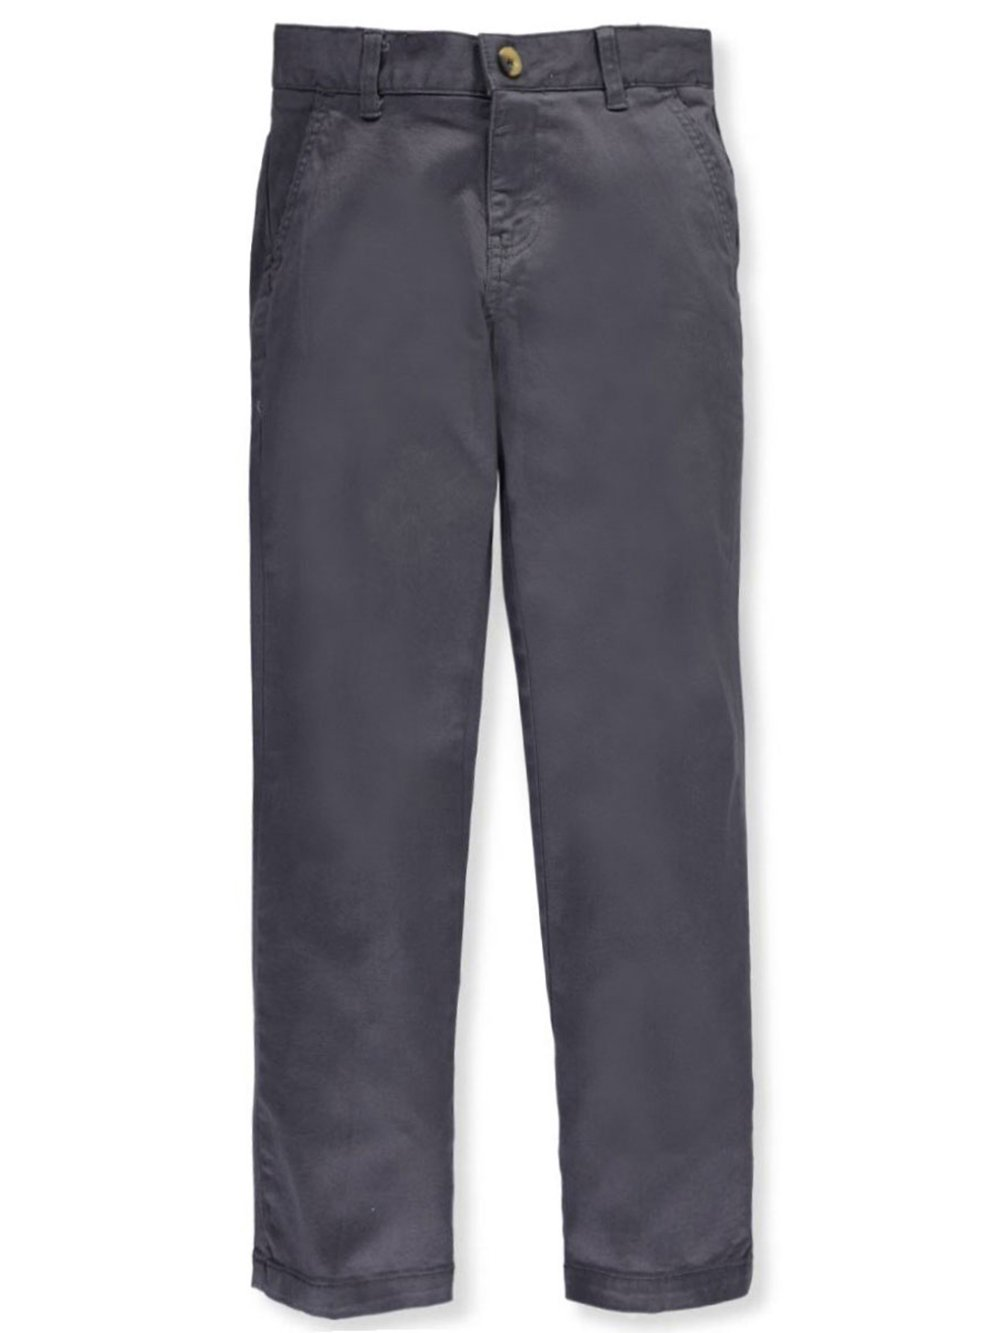 French Toast Boys Straight Fit Chino Pant SK9518